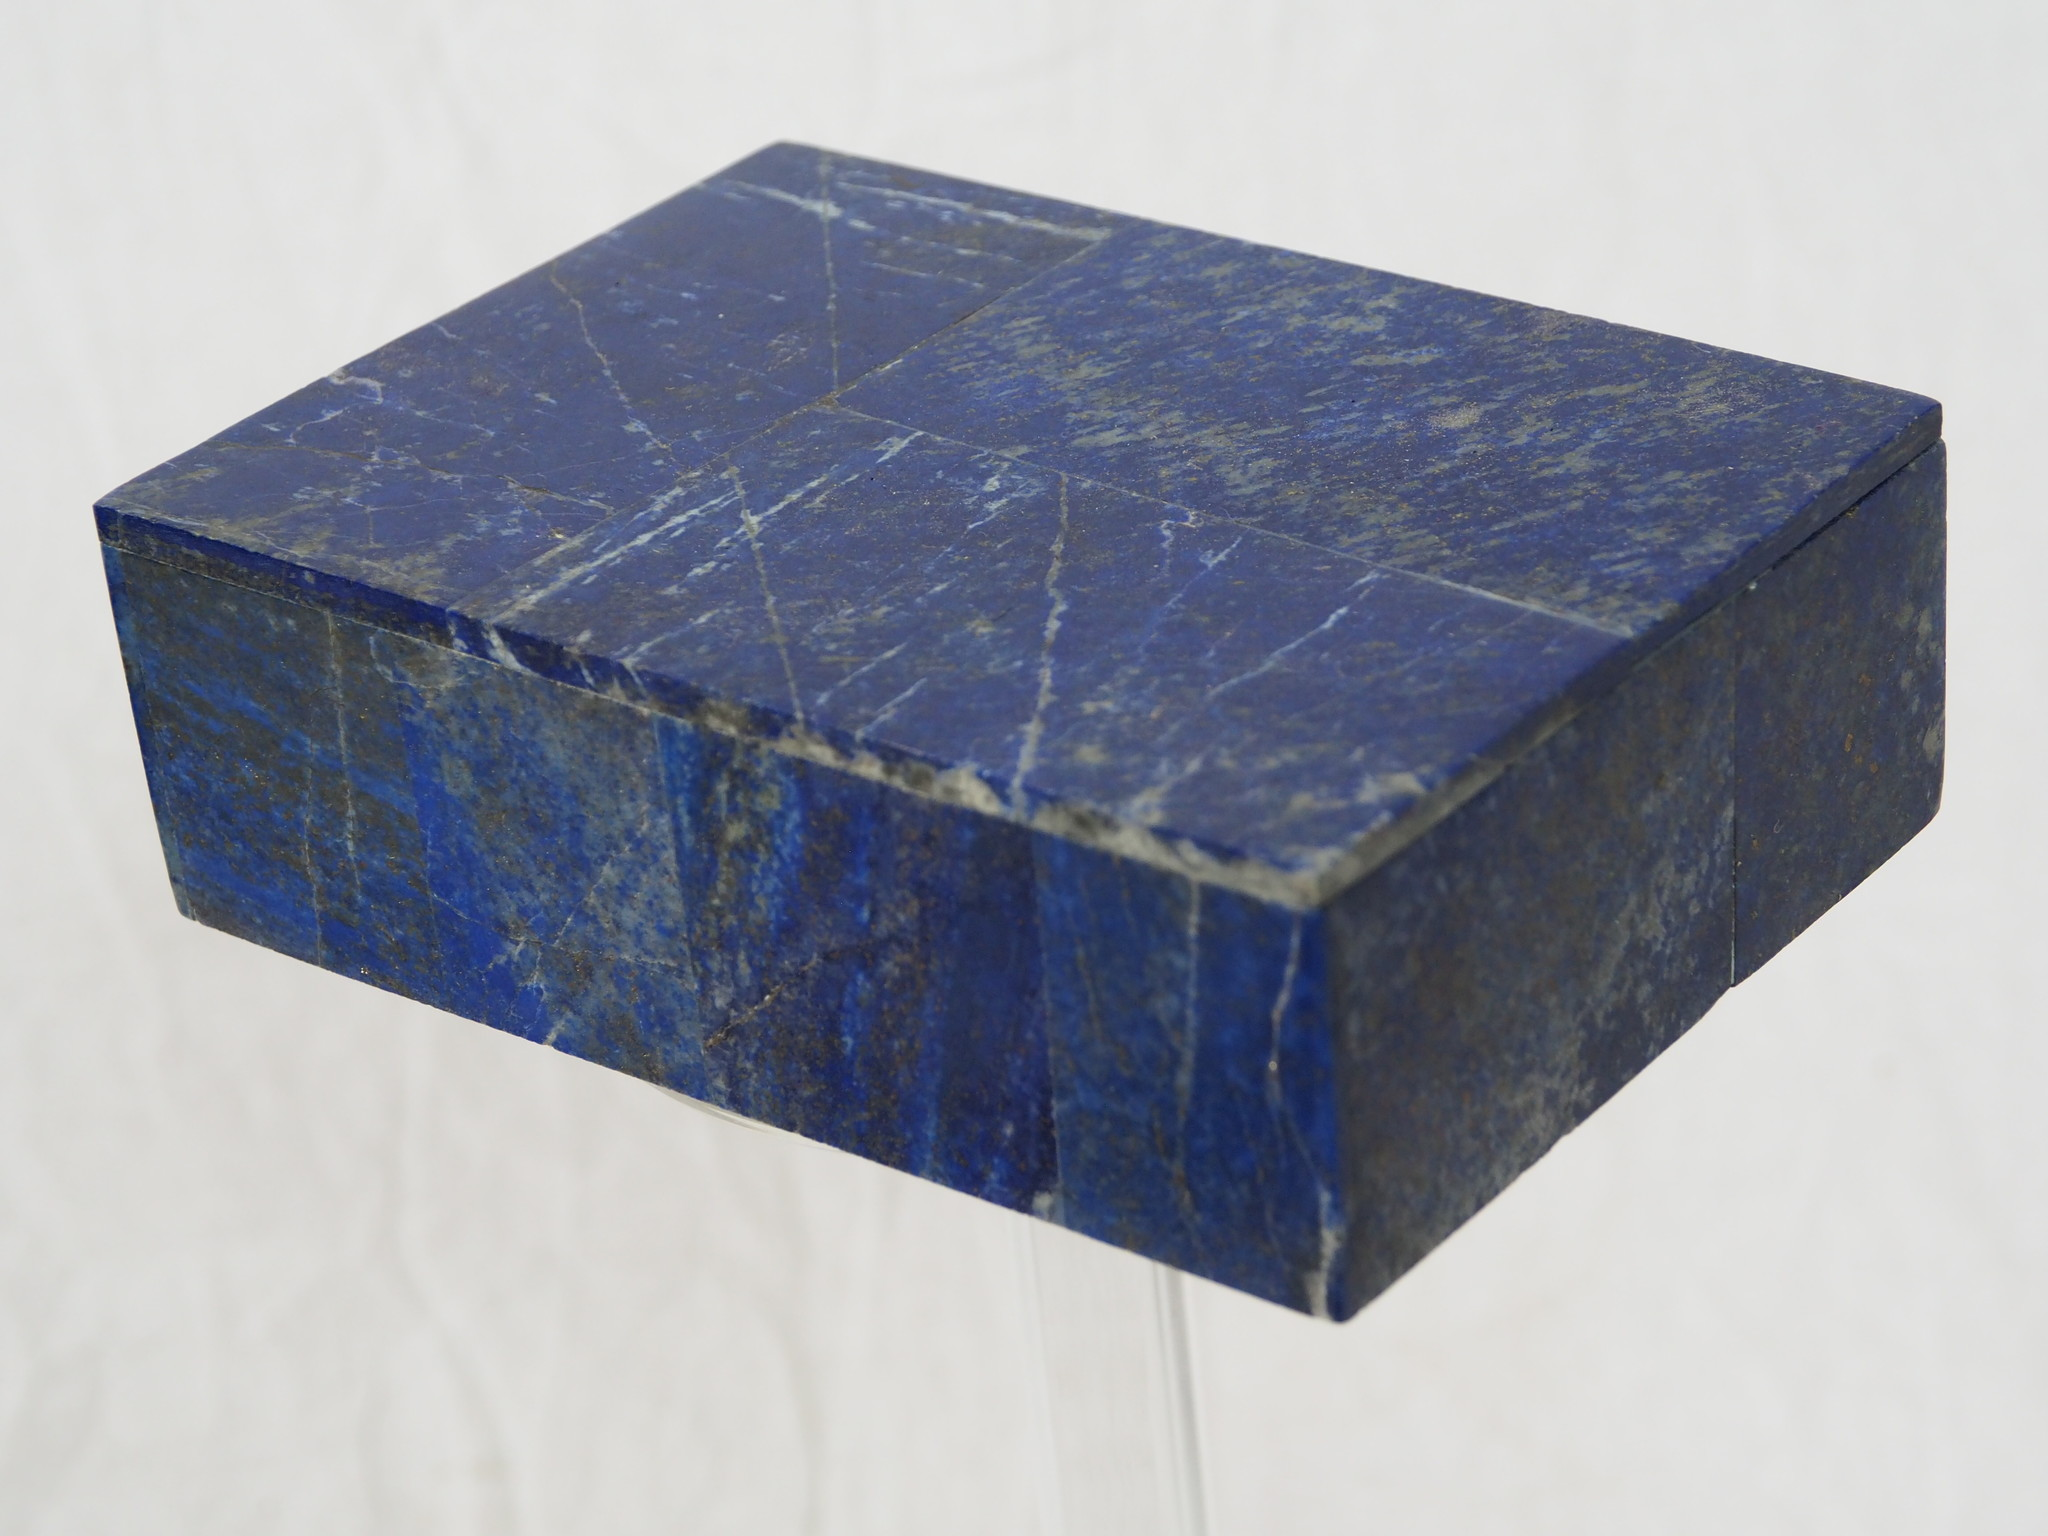 Hand Crafted stunning genuine Afghan Lapis Lazuli Gemstone  Box   from Afghanistan No:21/D